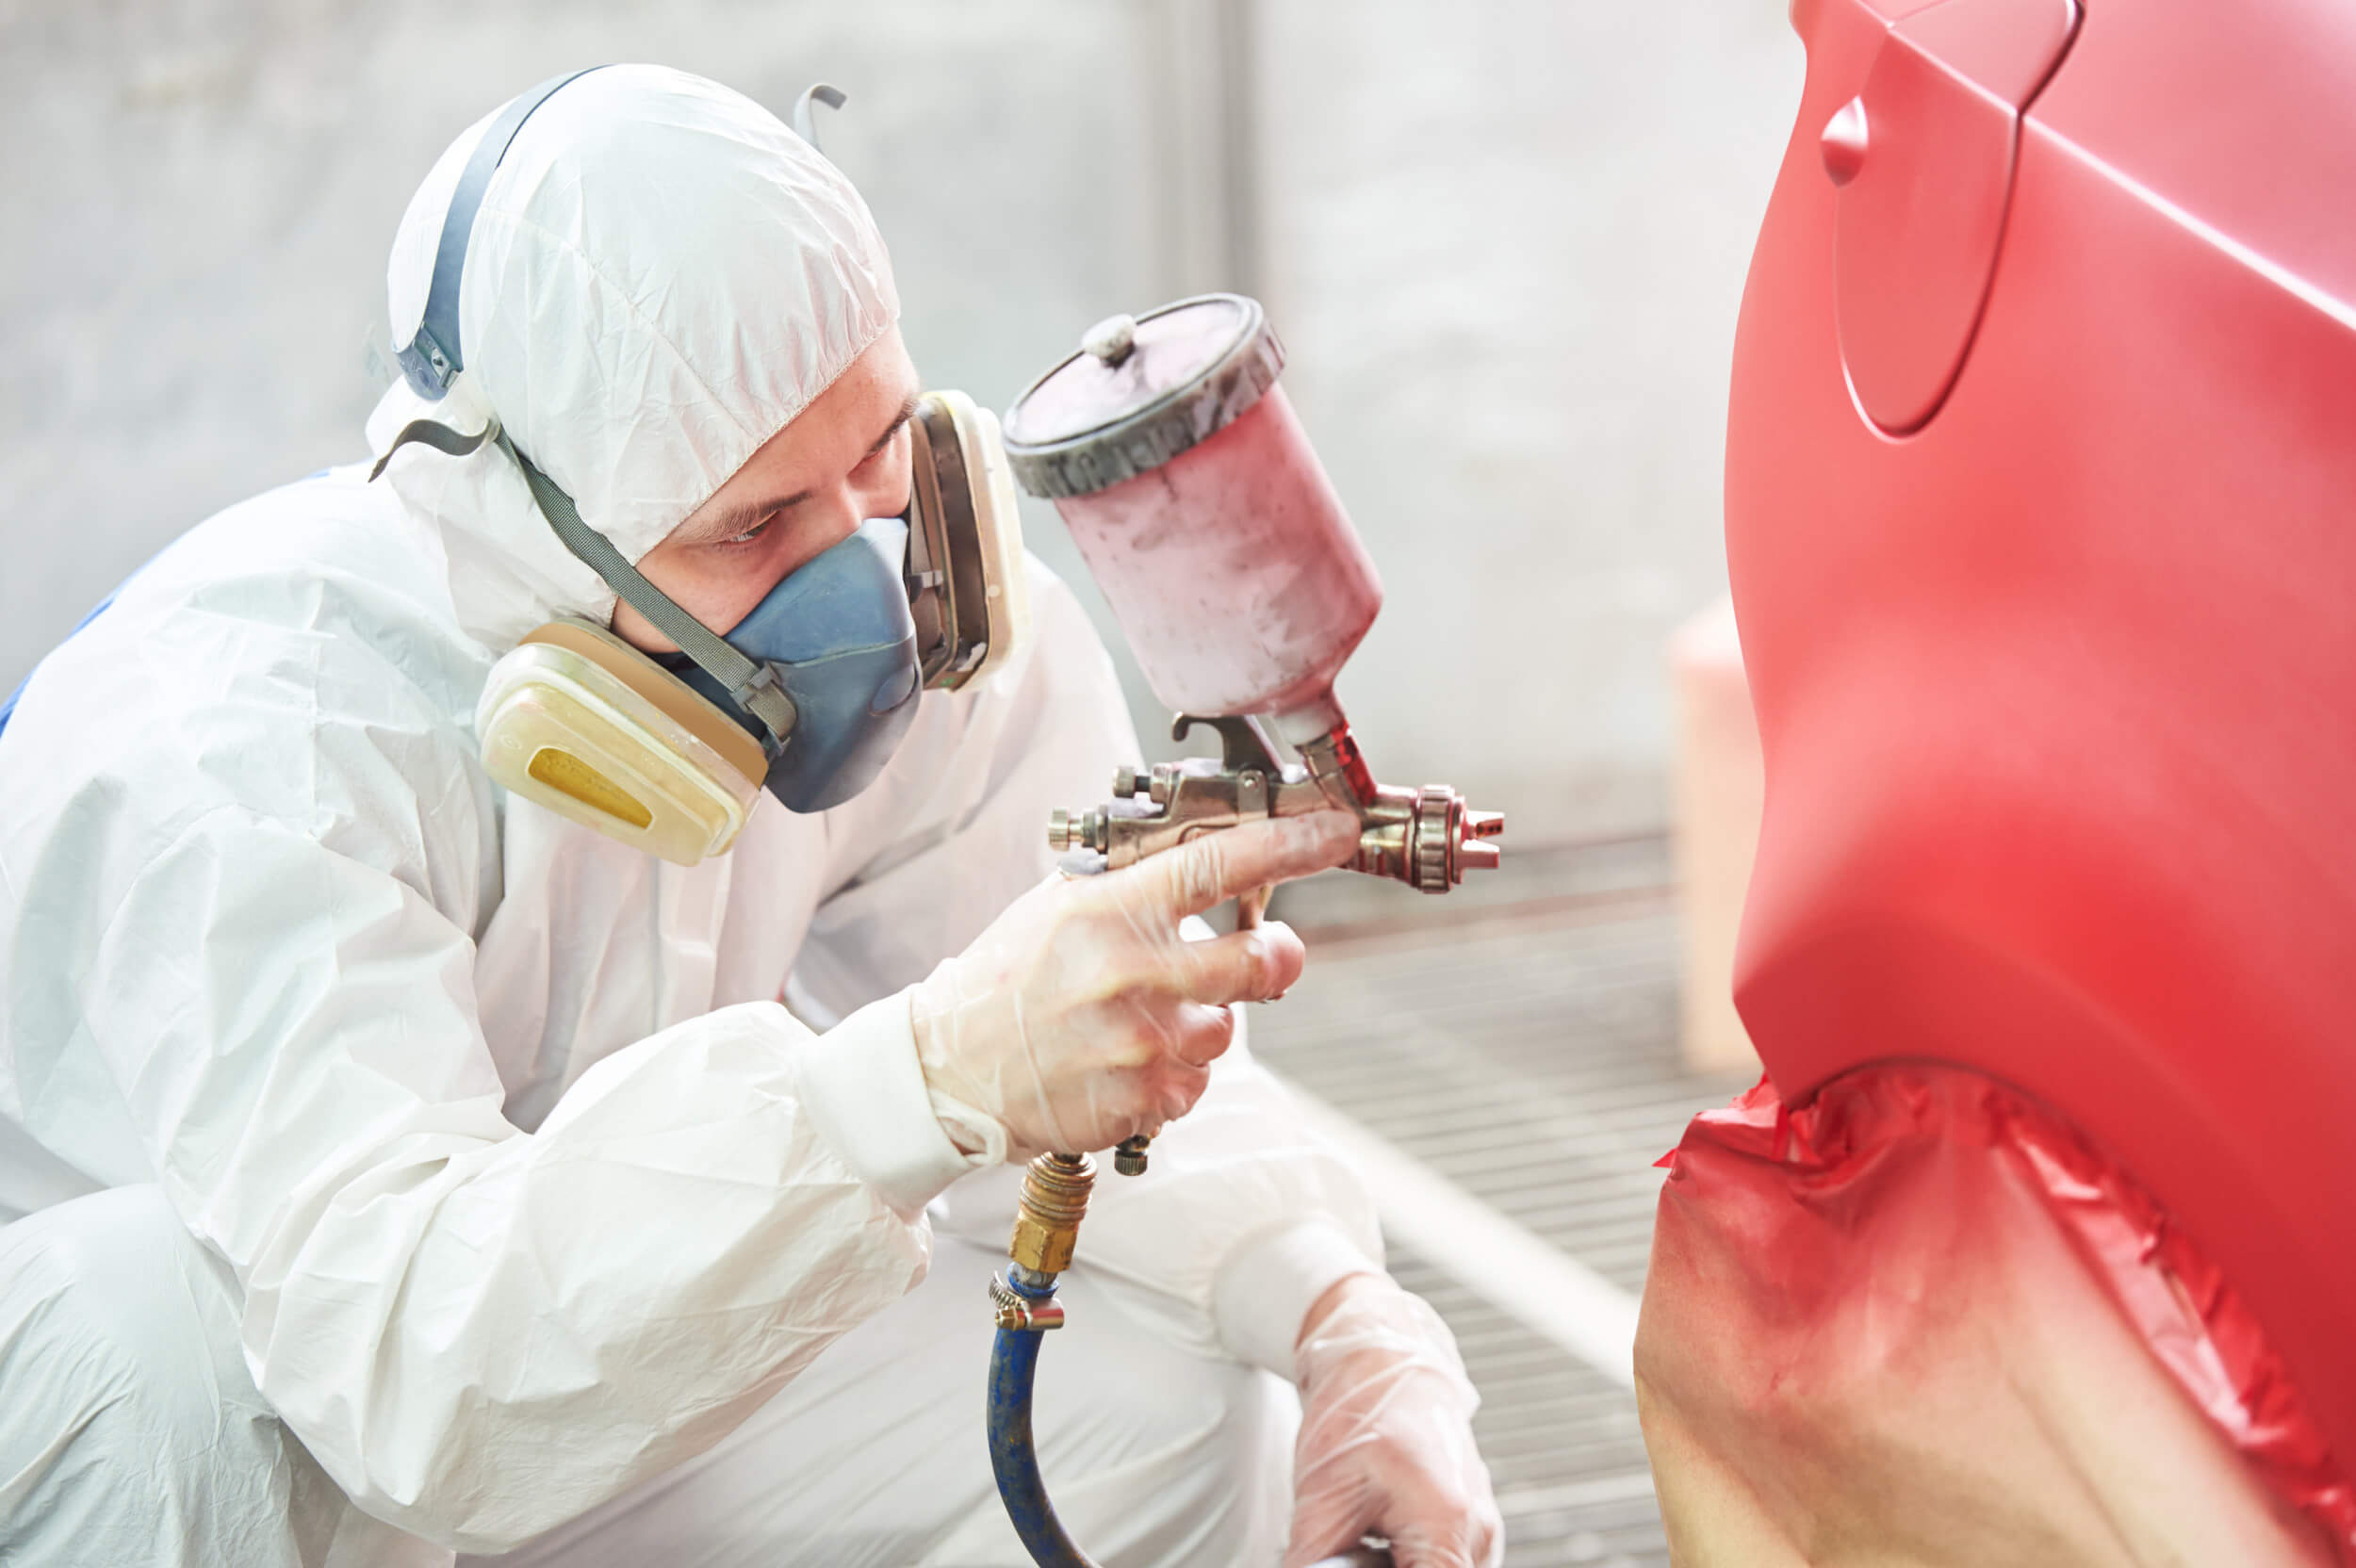 Technician in white protective suit spray painting car red to make it feel like new